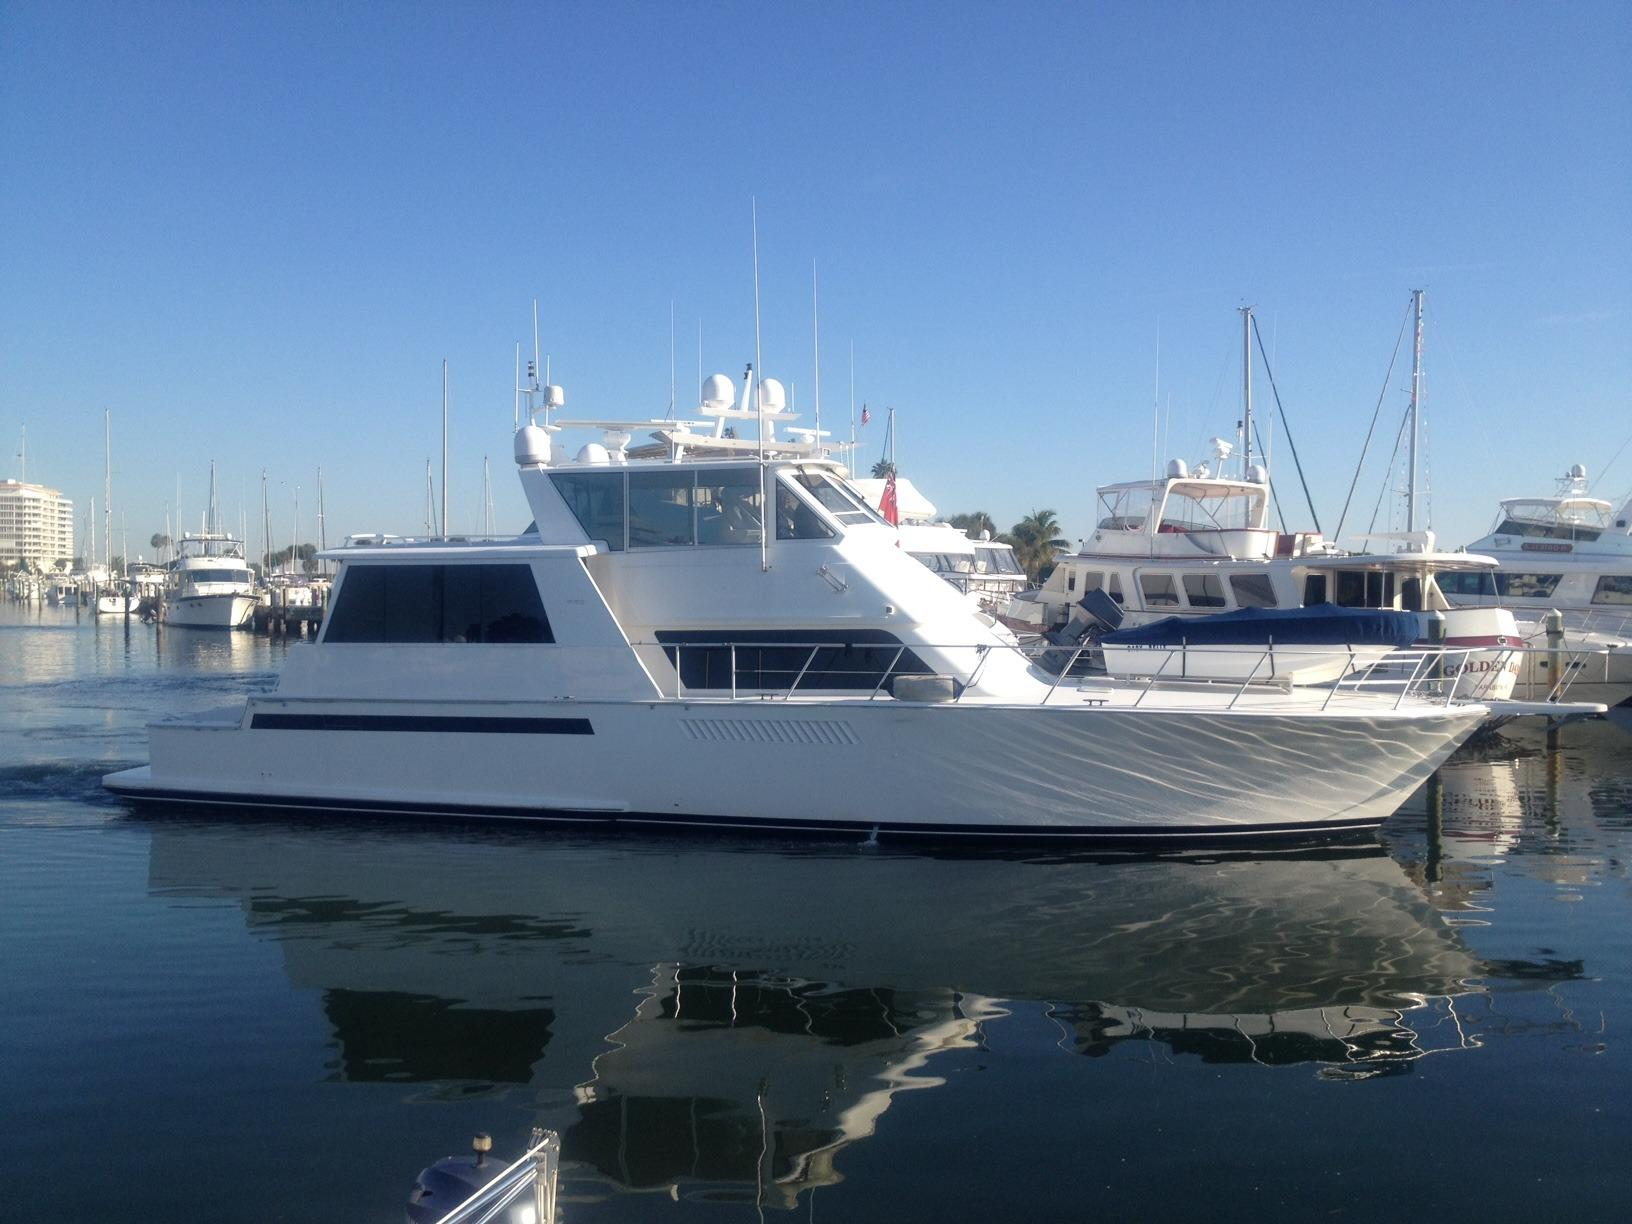 Used viking yachts for sale from 50 to 60 feet for 60 viking motor yacht for sale